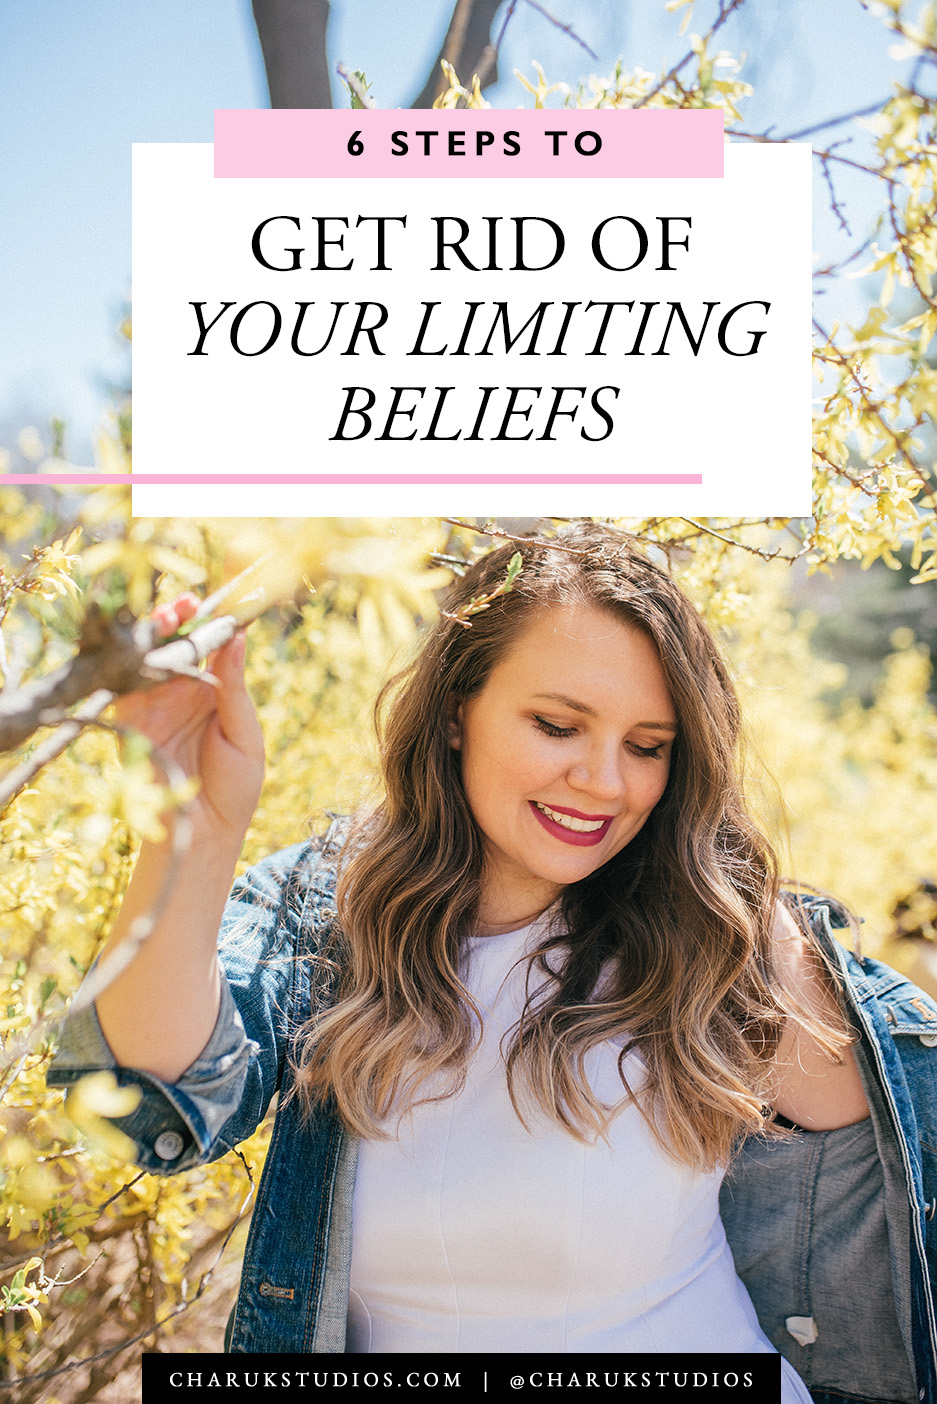 6 Steps to Get Rid of Your Limiting Beliefs by Charuk Studios